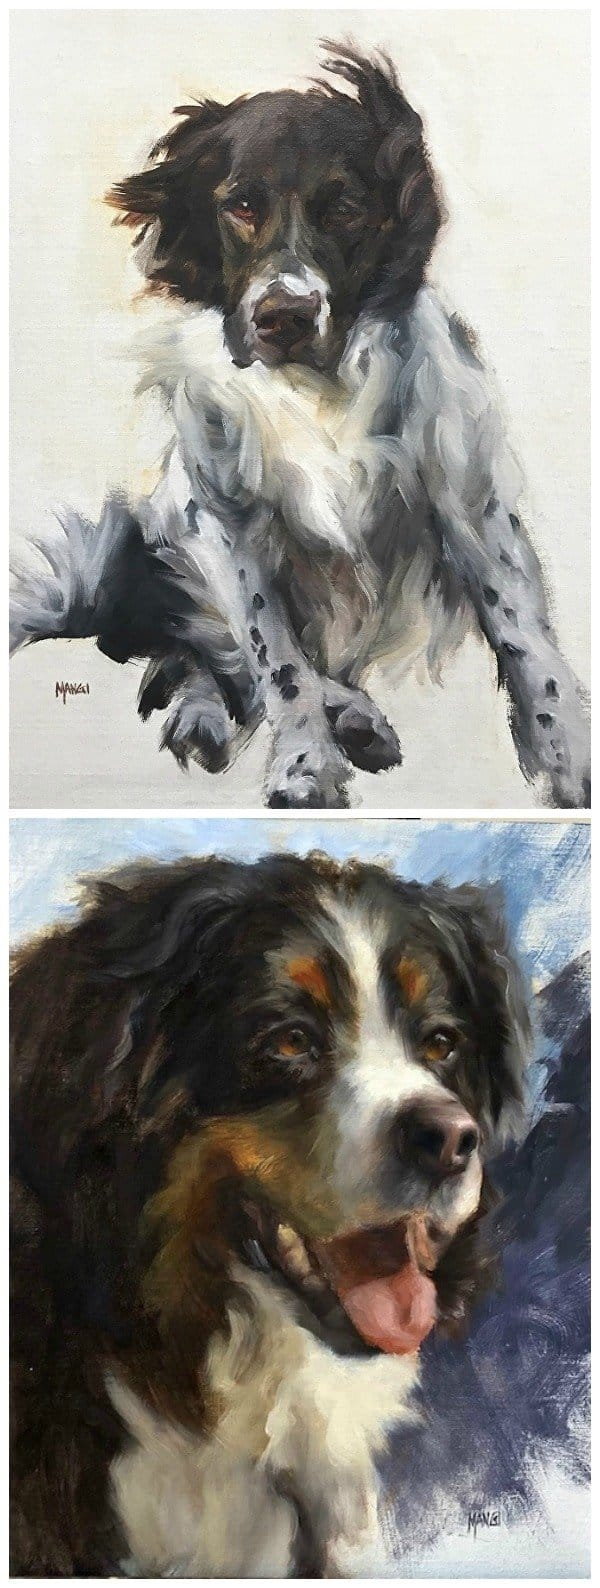 Dog portraits by Johanne Mangi - 5 amazing pet artists featured on Art Makes People